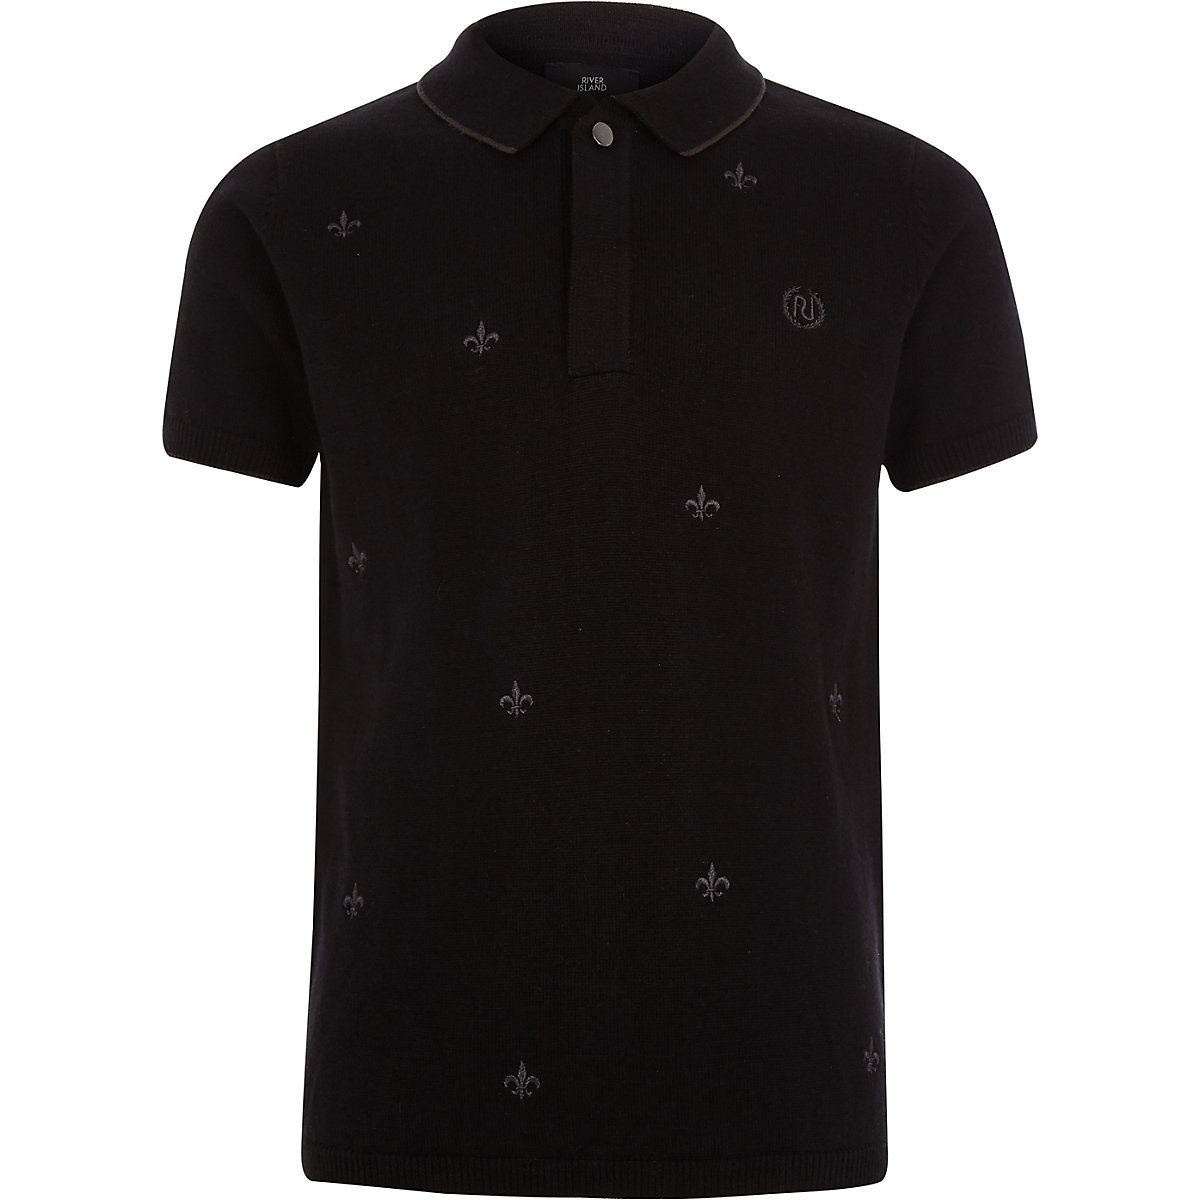 Boys black Fleur De Lis embroidery polo shirt